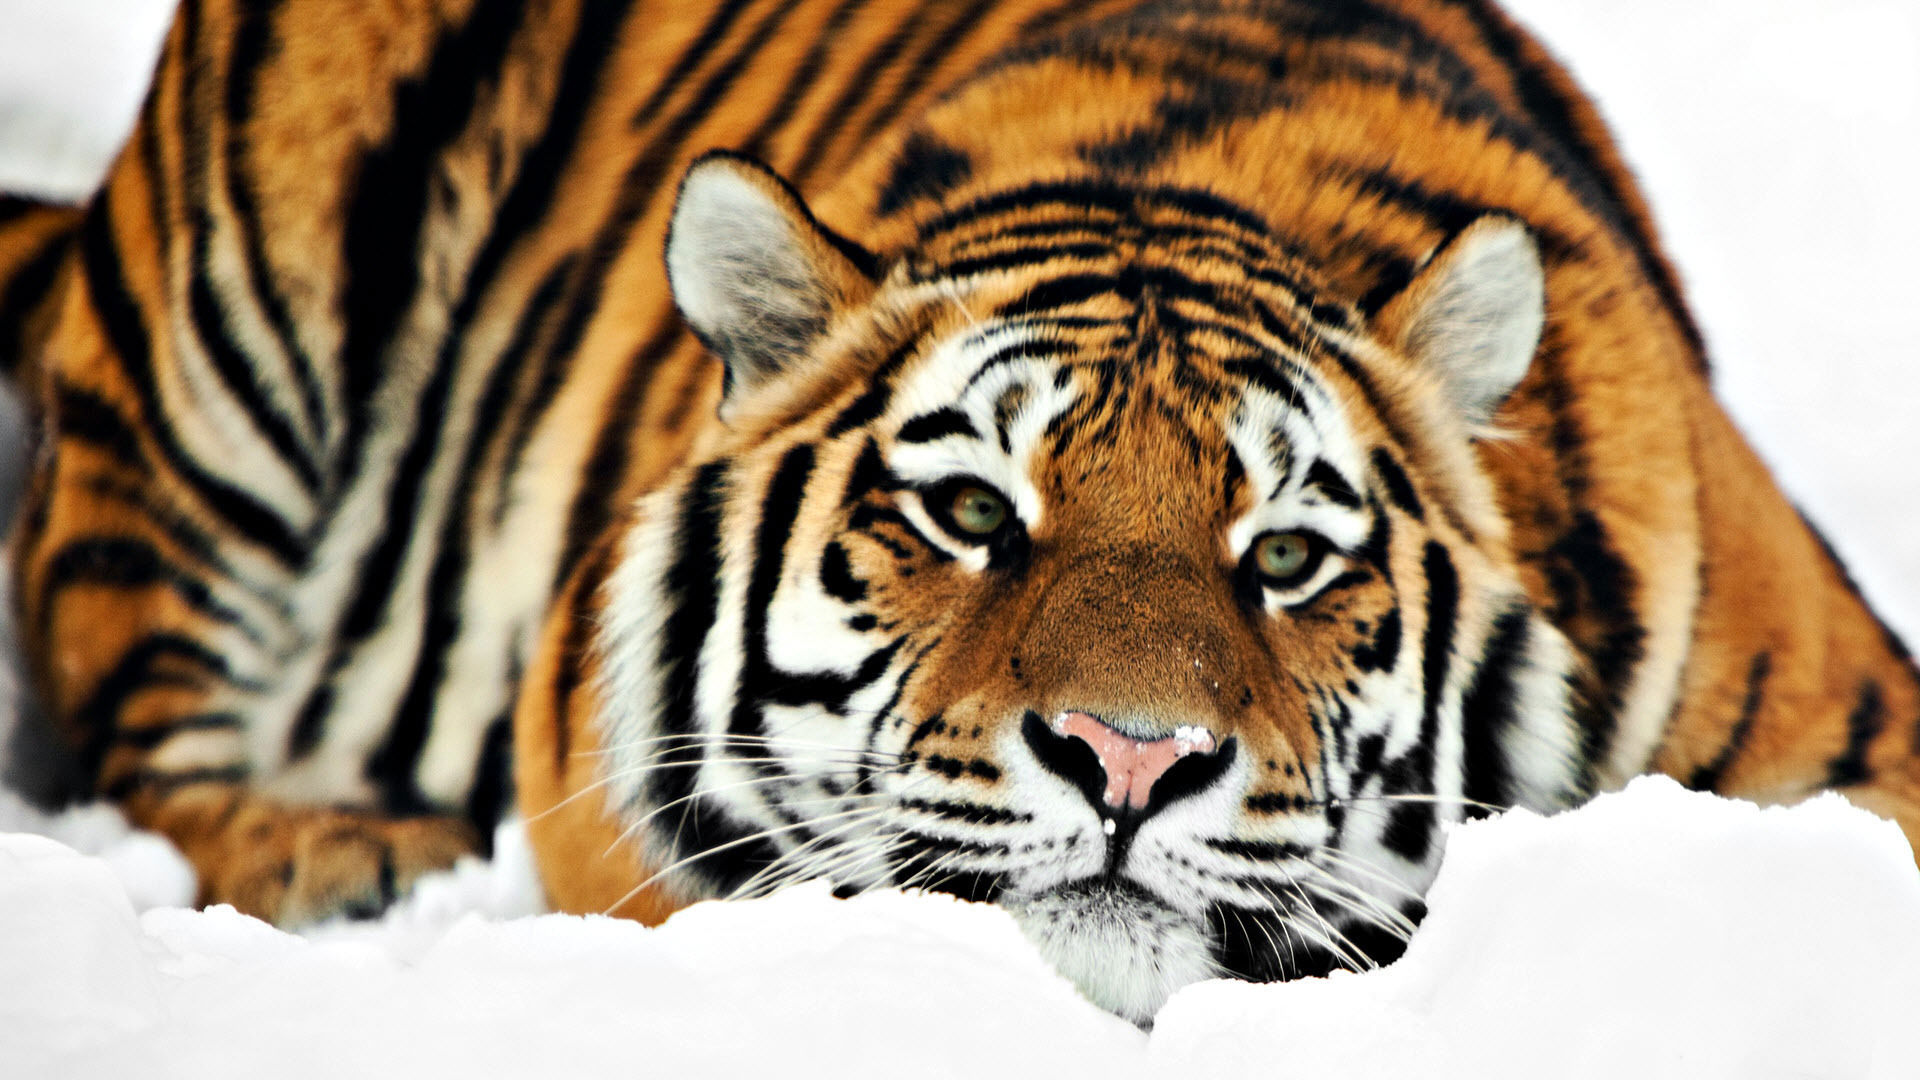 tiger wallpaper widescreen HD